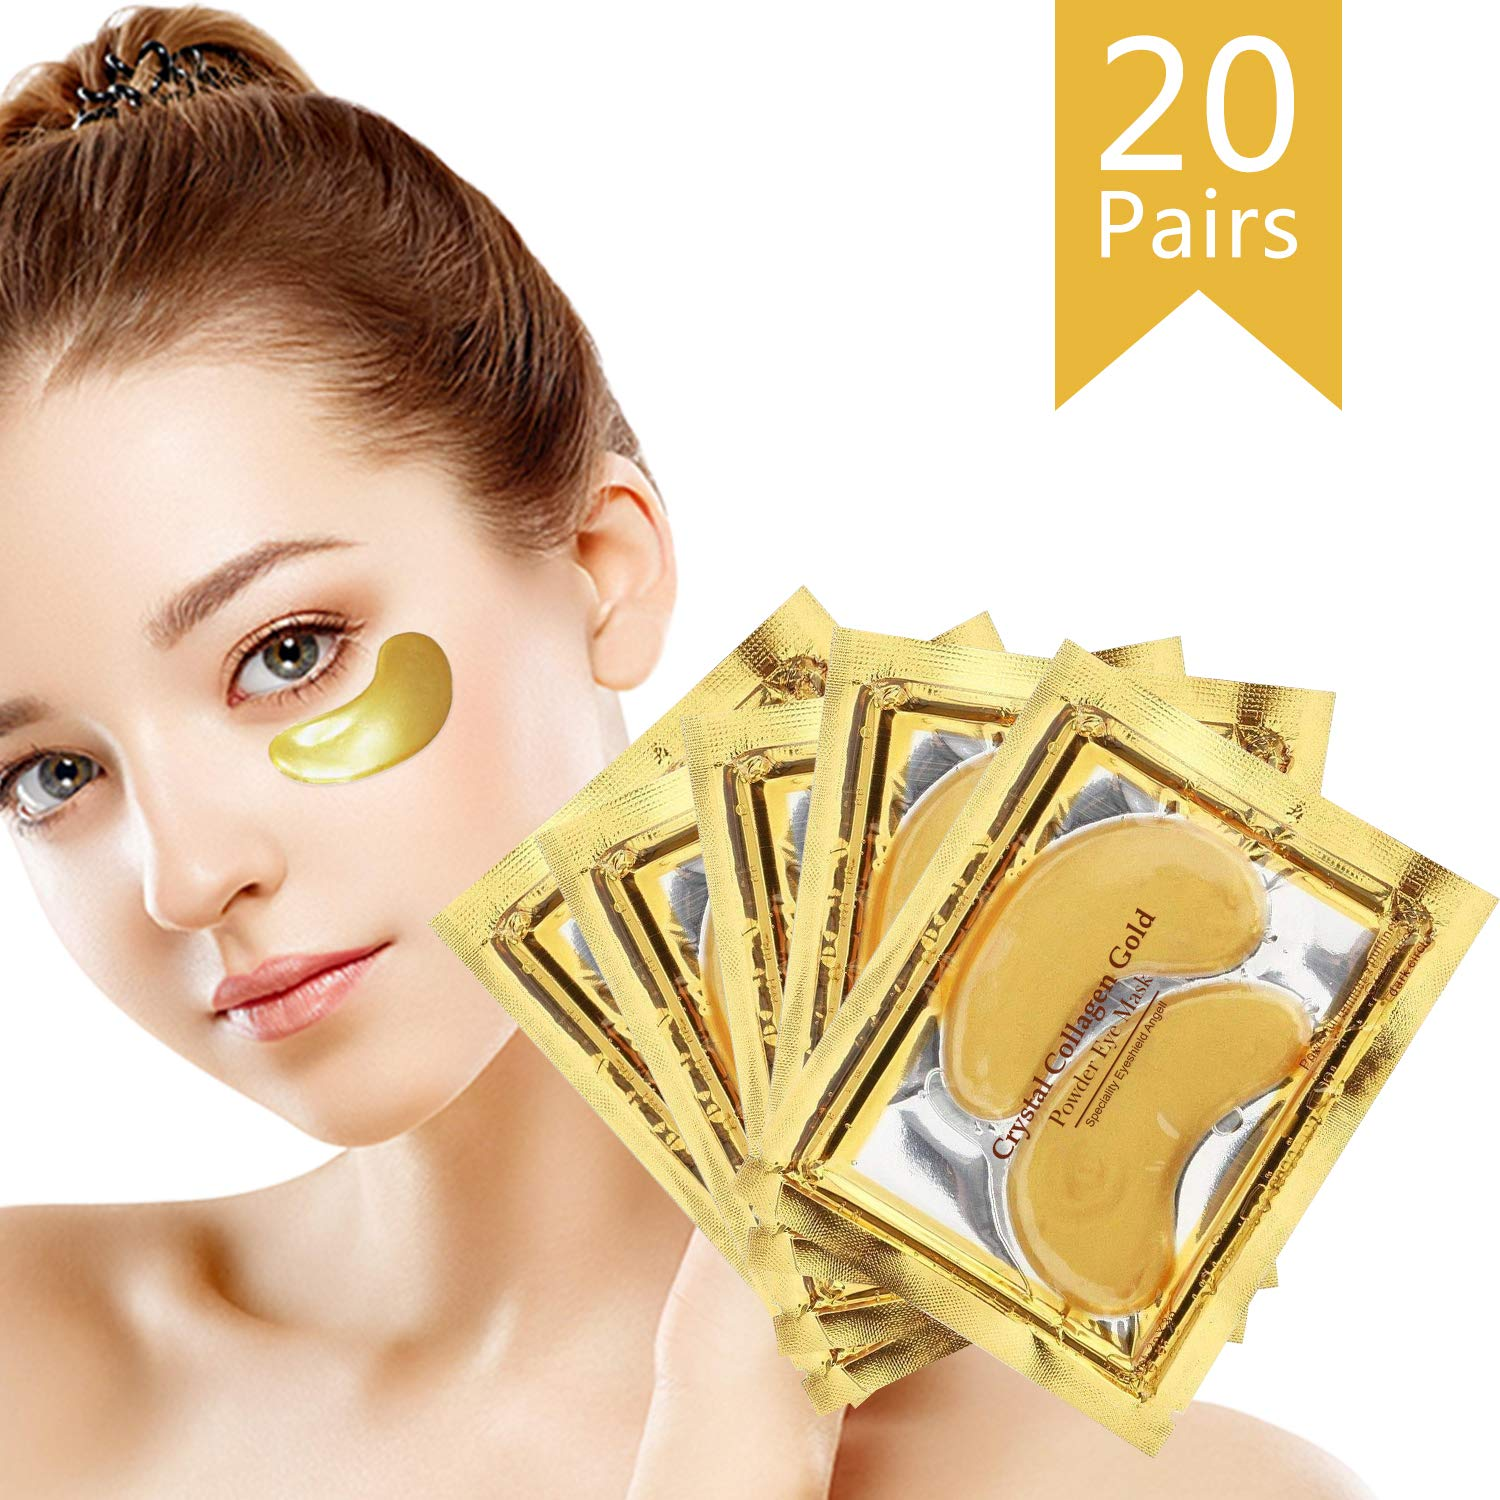 24K Gold Powder Collagen Eye Mask, Great for Anti Aging Crystal Gel, Dark Circles, Puffiness and Fine Lines, 100% Collagen Under Eye Pads for Man and Women 20 Pairs by 24K Gold Eye Mask